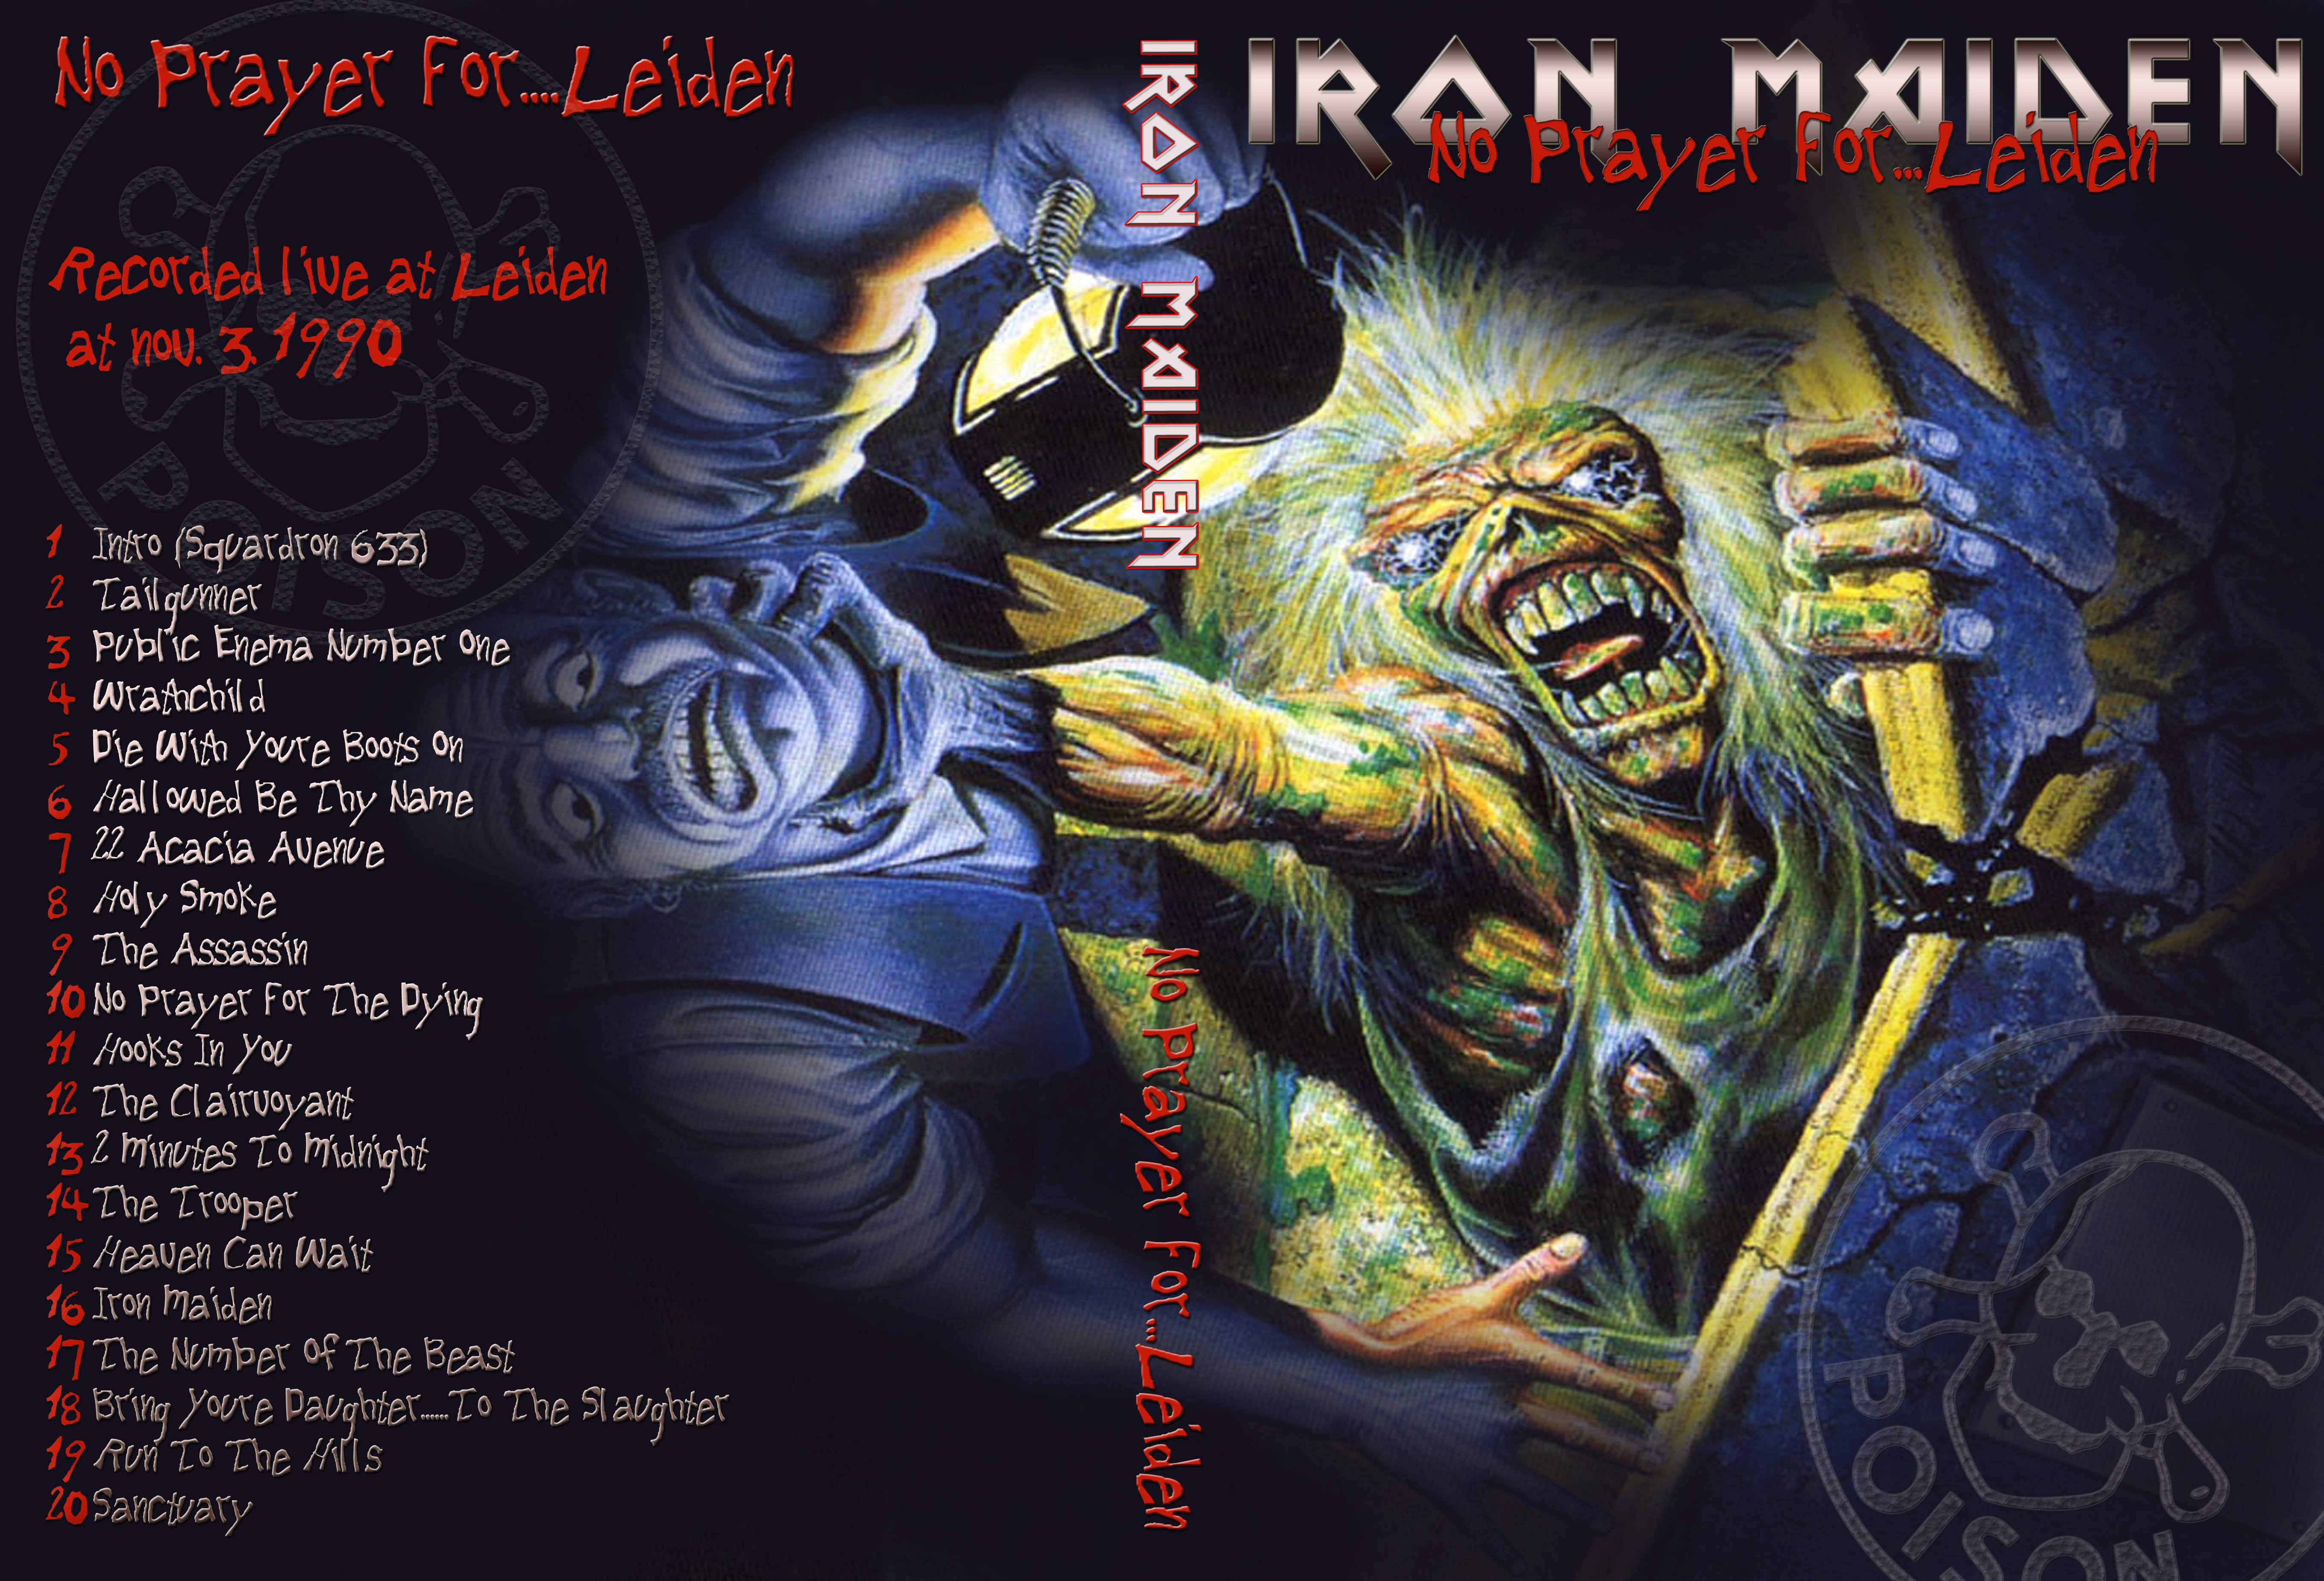 Iron Maiden - Bring Your Daughter... To The Slaughter (Brain Pack)